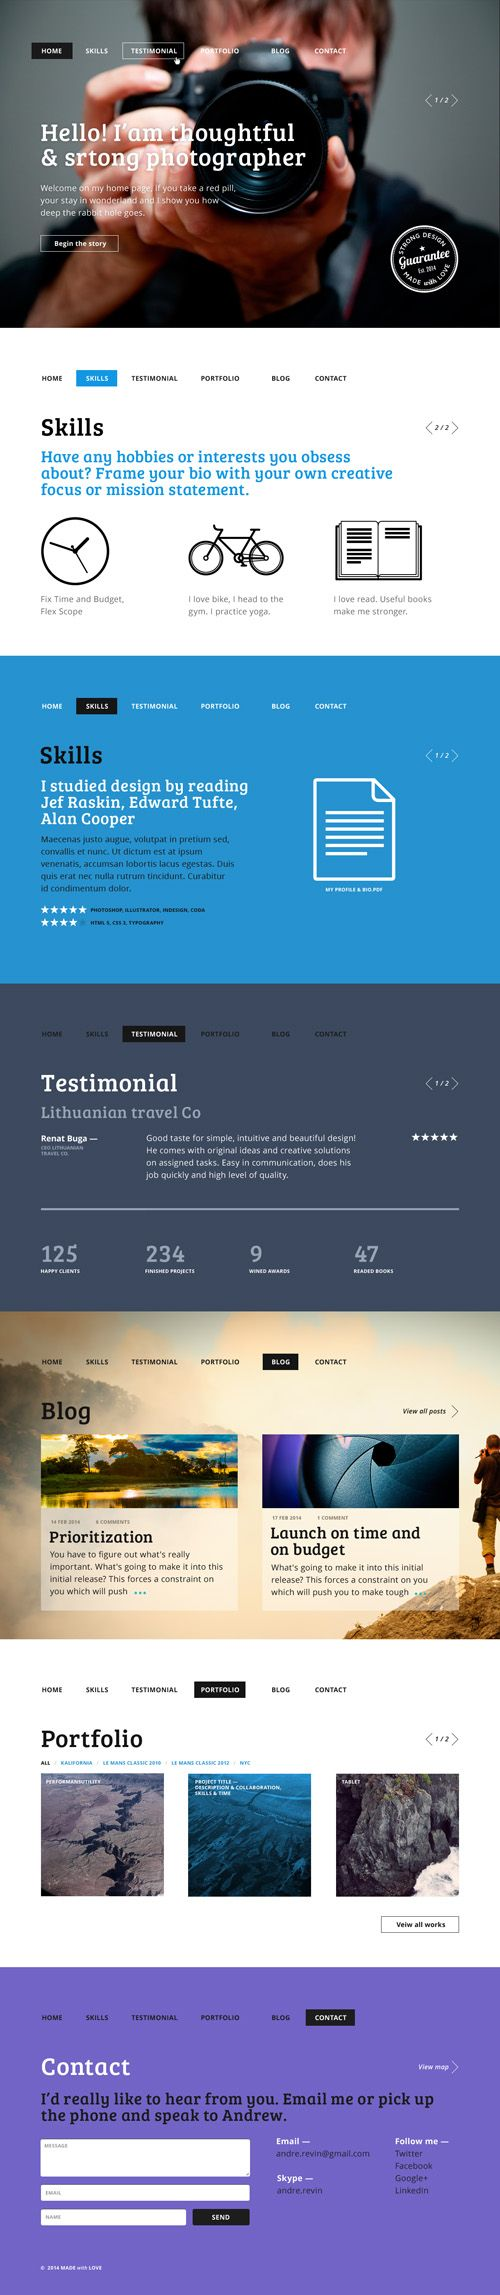 One Page Business Psd Templates | Design |